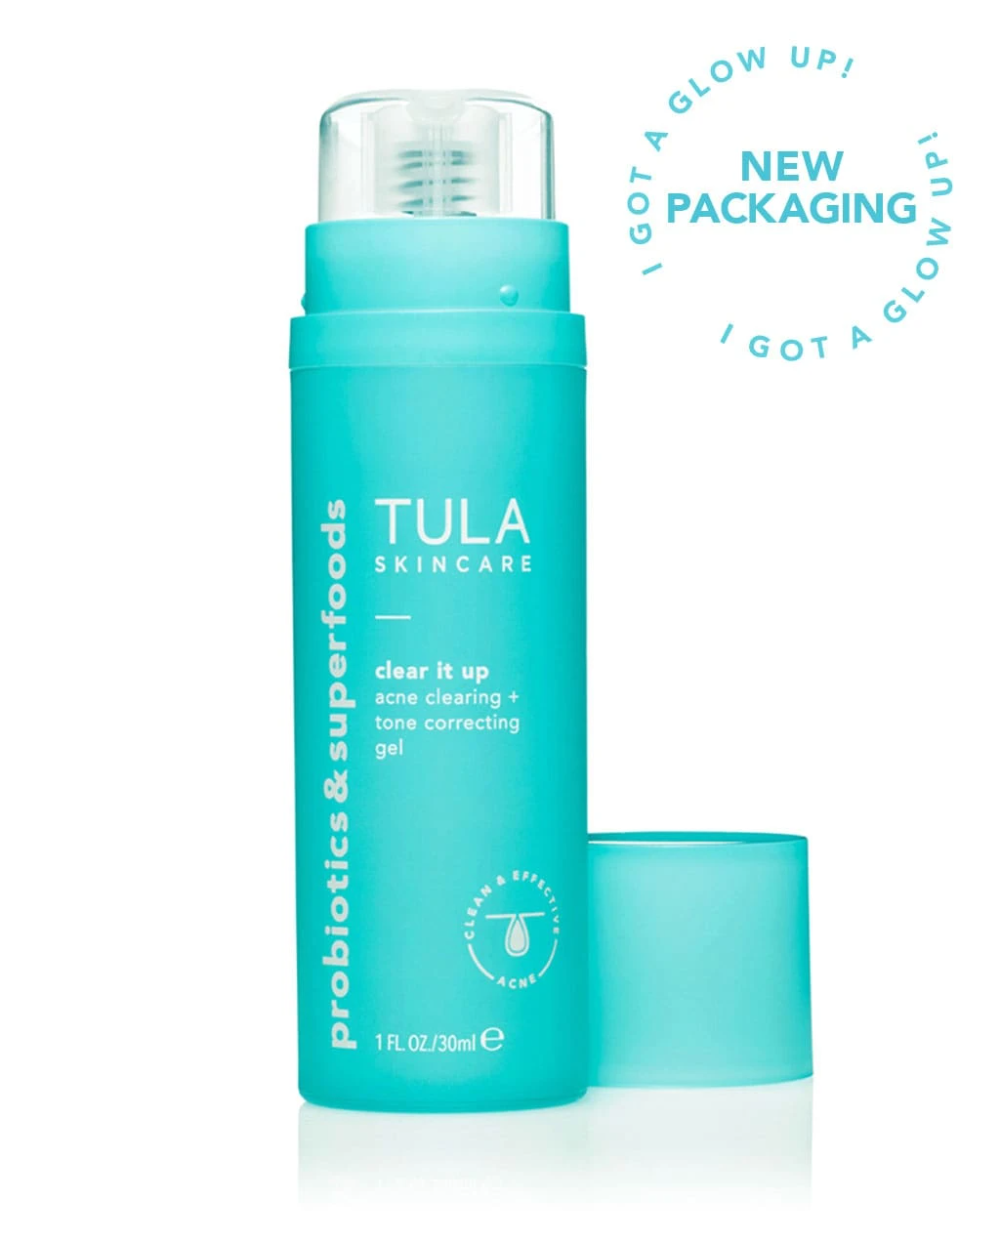 Acne Clearing Tone Correcting Gel In 2020 Tula Skincare Clear Acne Skin Care Acne